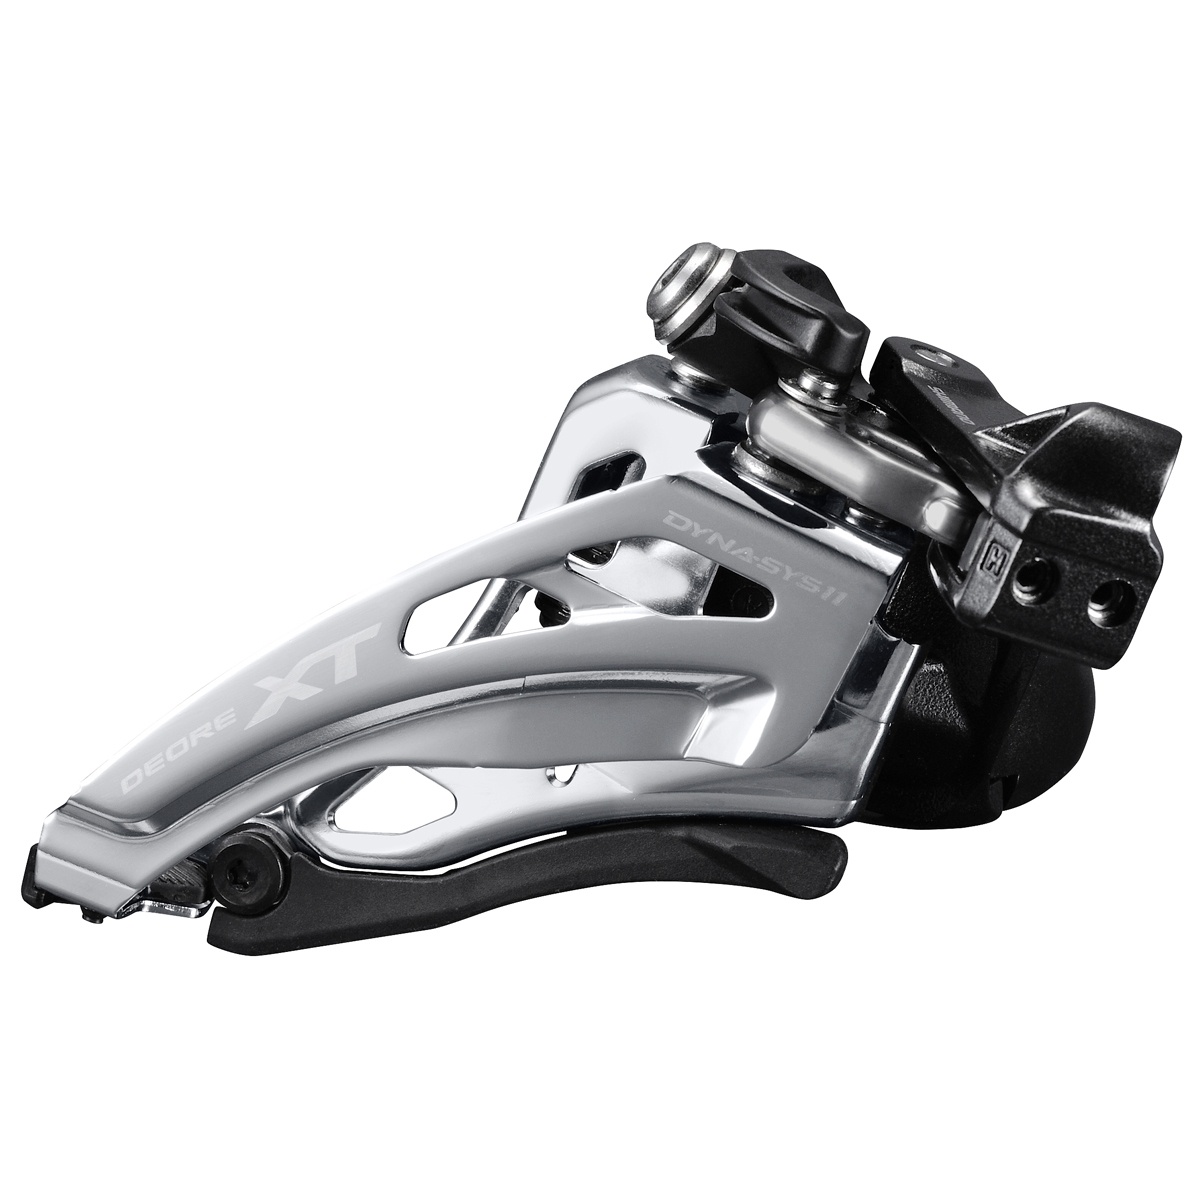 Dérailleur avant Shimano XT M8020 2x11 Side-Swing Collier Bas 34.9-31.8-28.6 mm